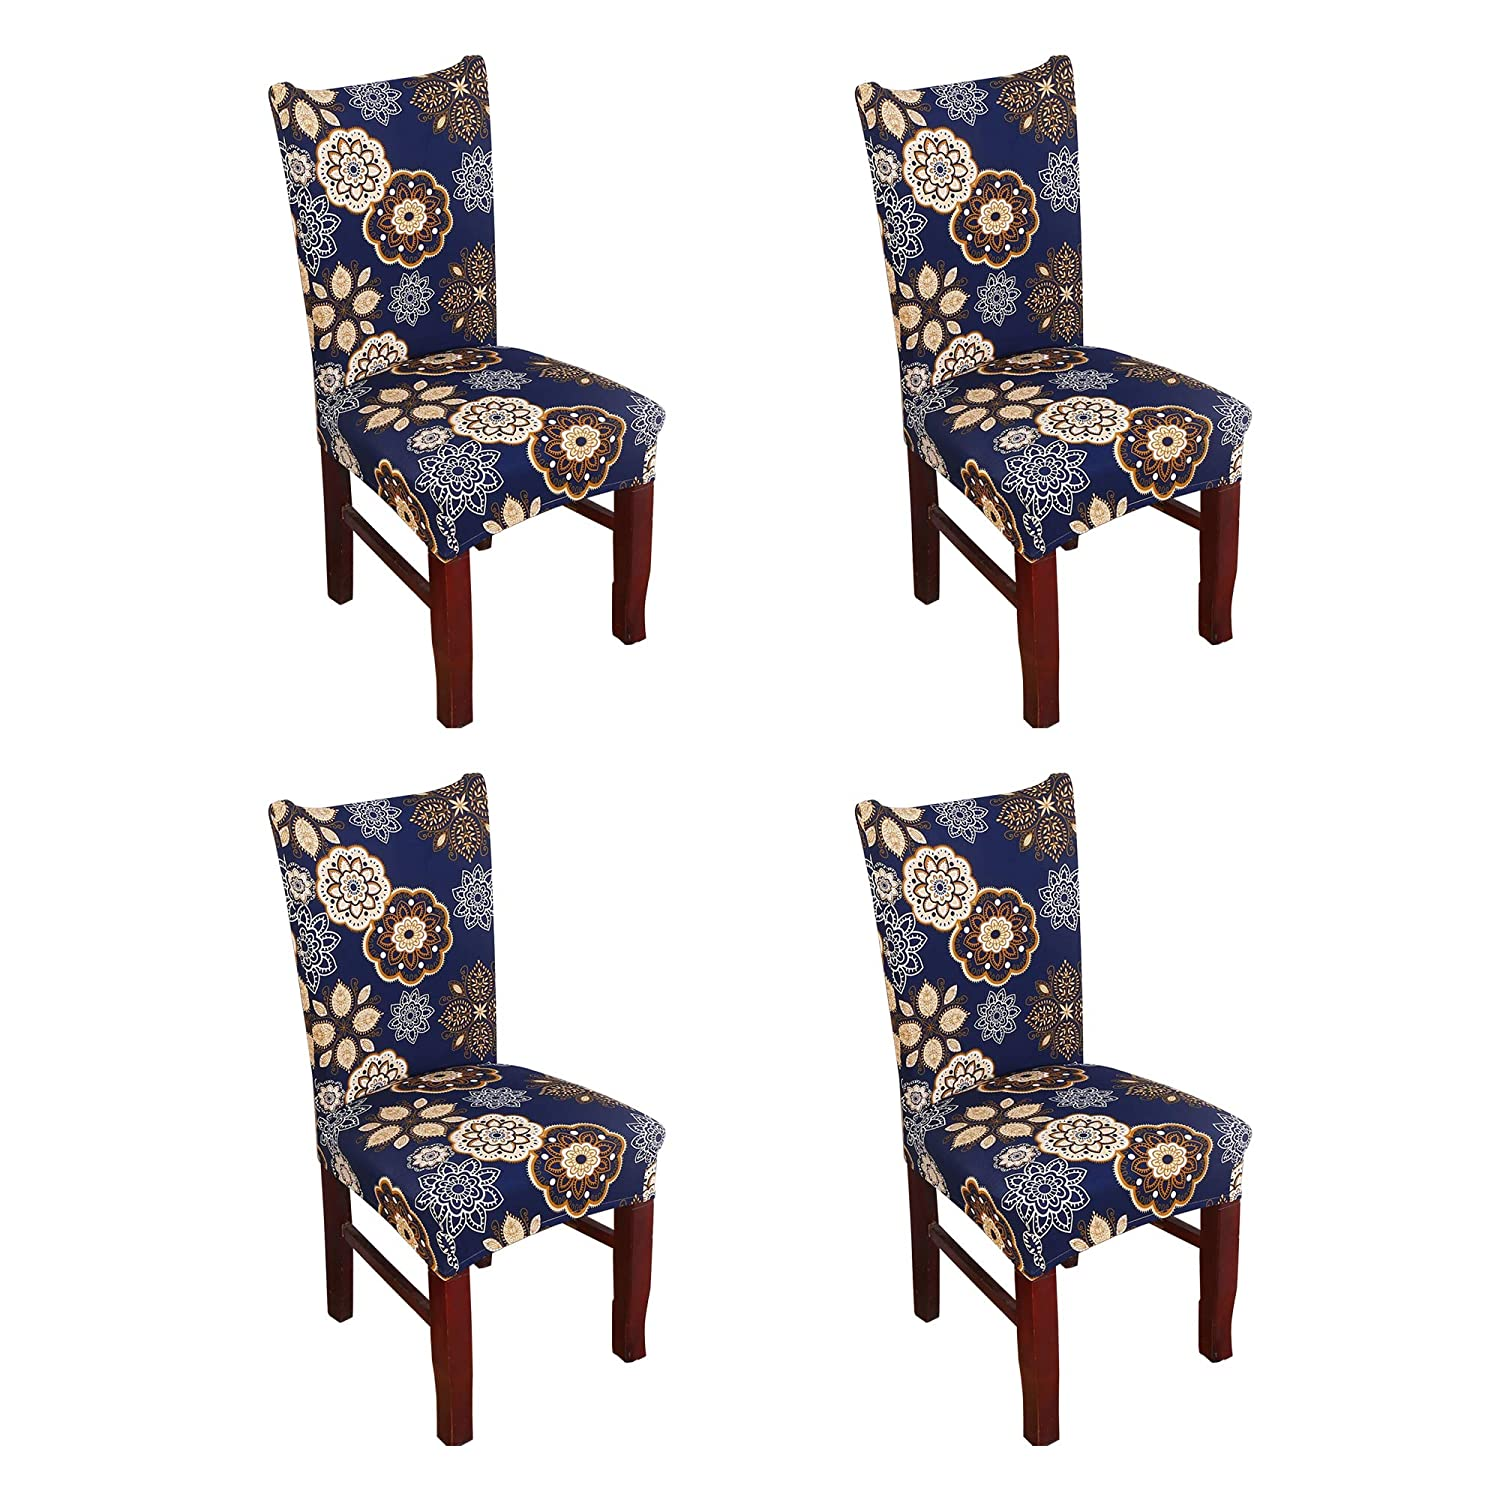 Argstar 4 Pack Chair Covers, Stretch Armless Chair Slipcover for Dining Room Seat Cushion, Spandex Kitchen Parson Chair Protector Cover, Removable & Washable, Navy Blue Flower Design